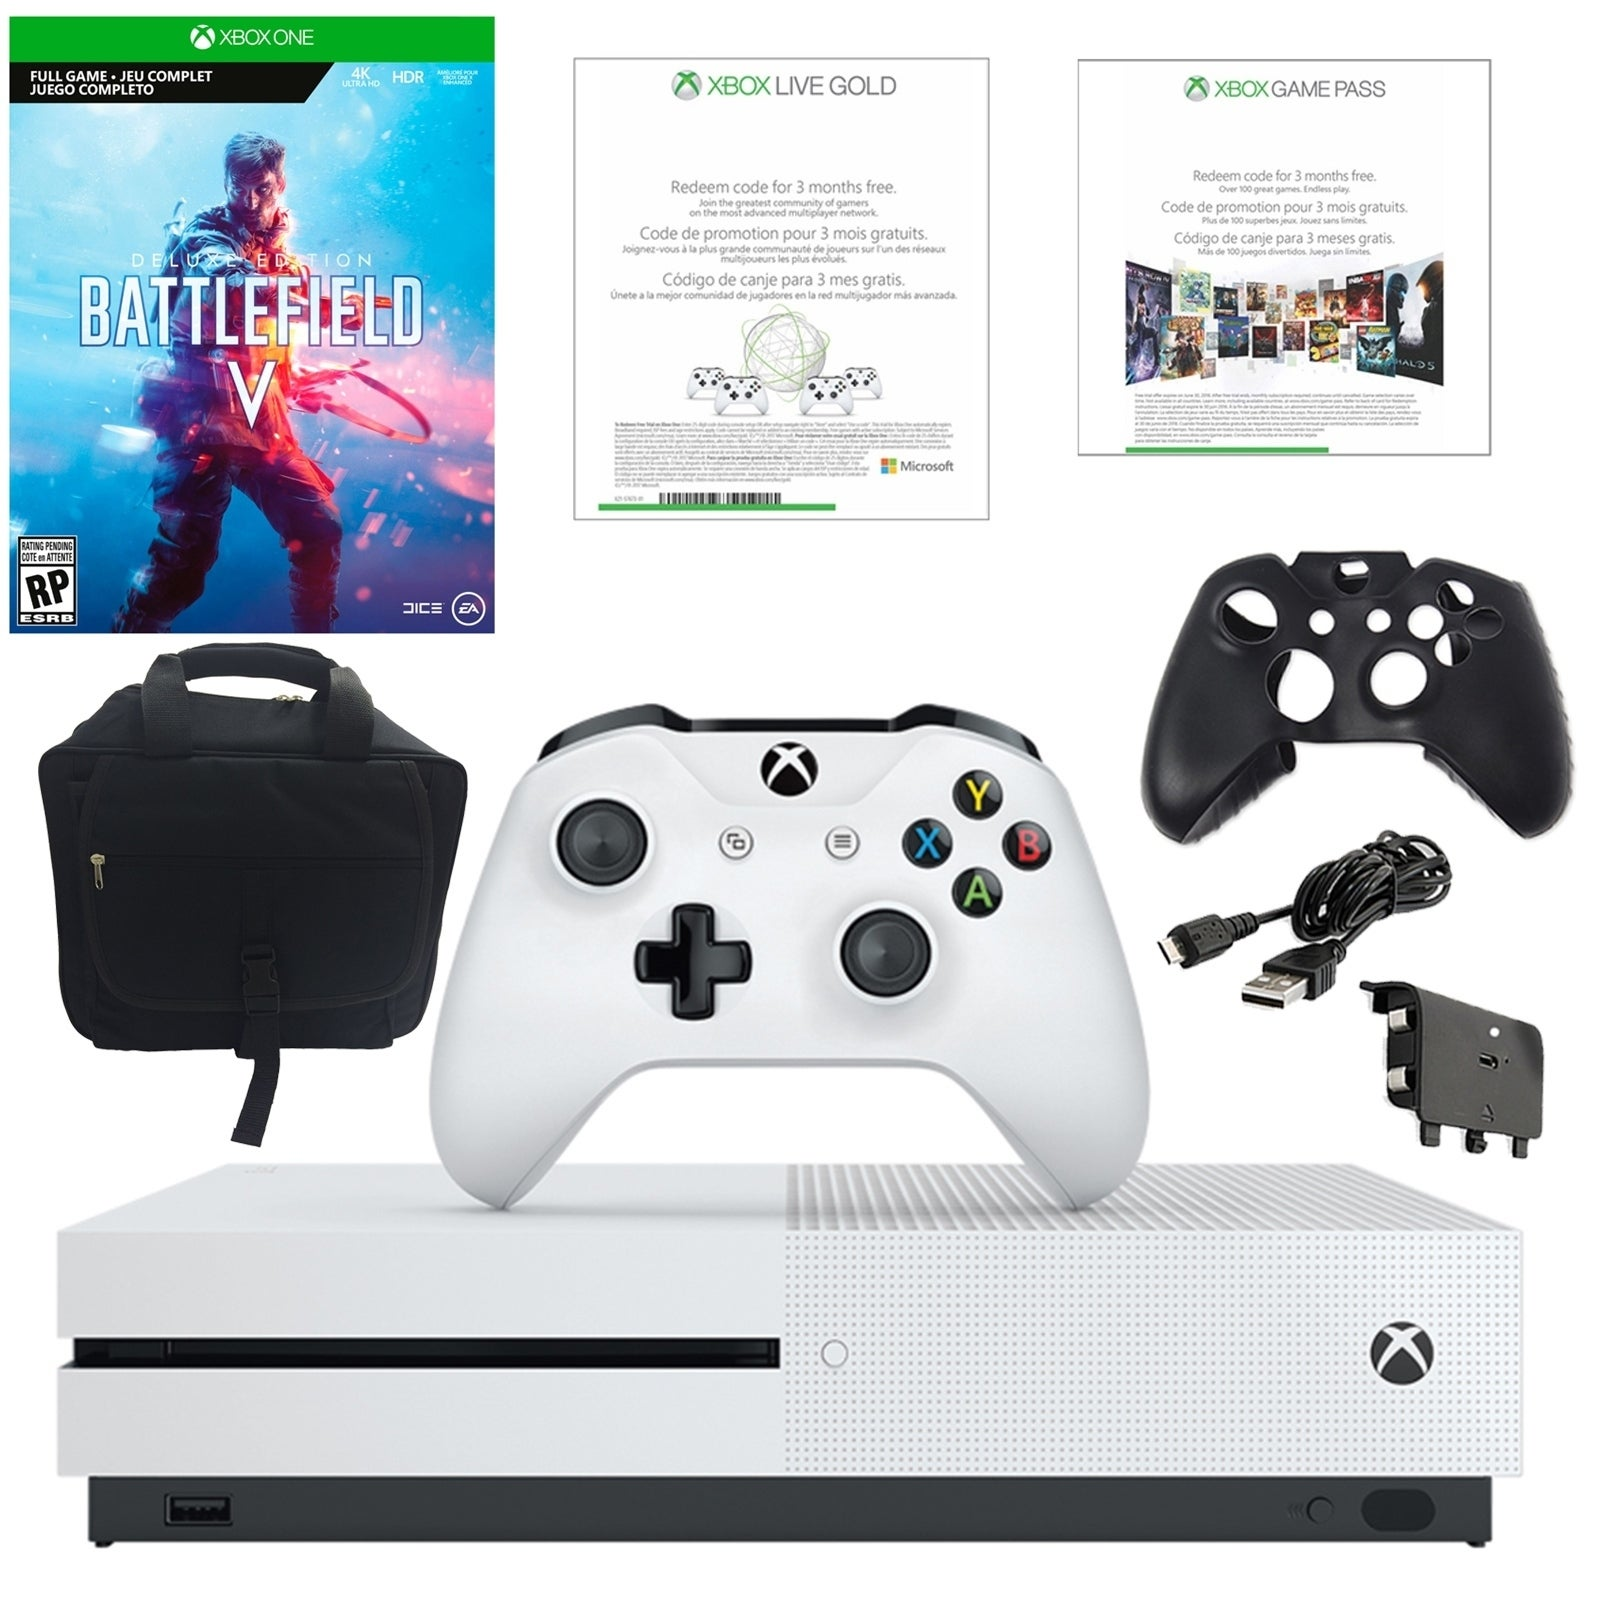 Xbox One S 1TB Battlefield V Console with Console Bag and Accessories